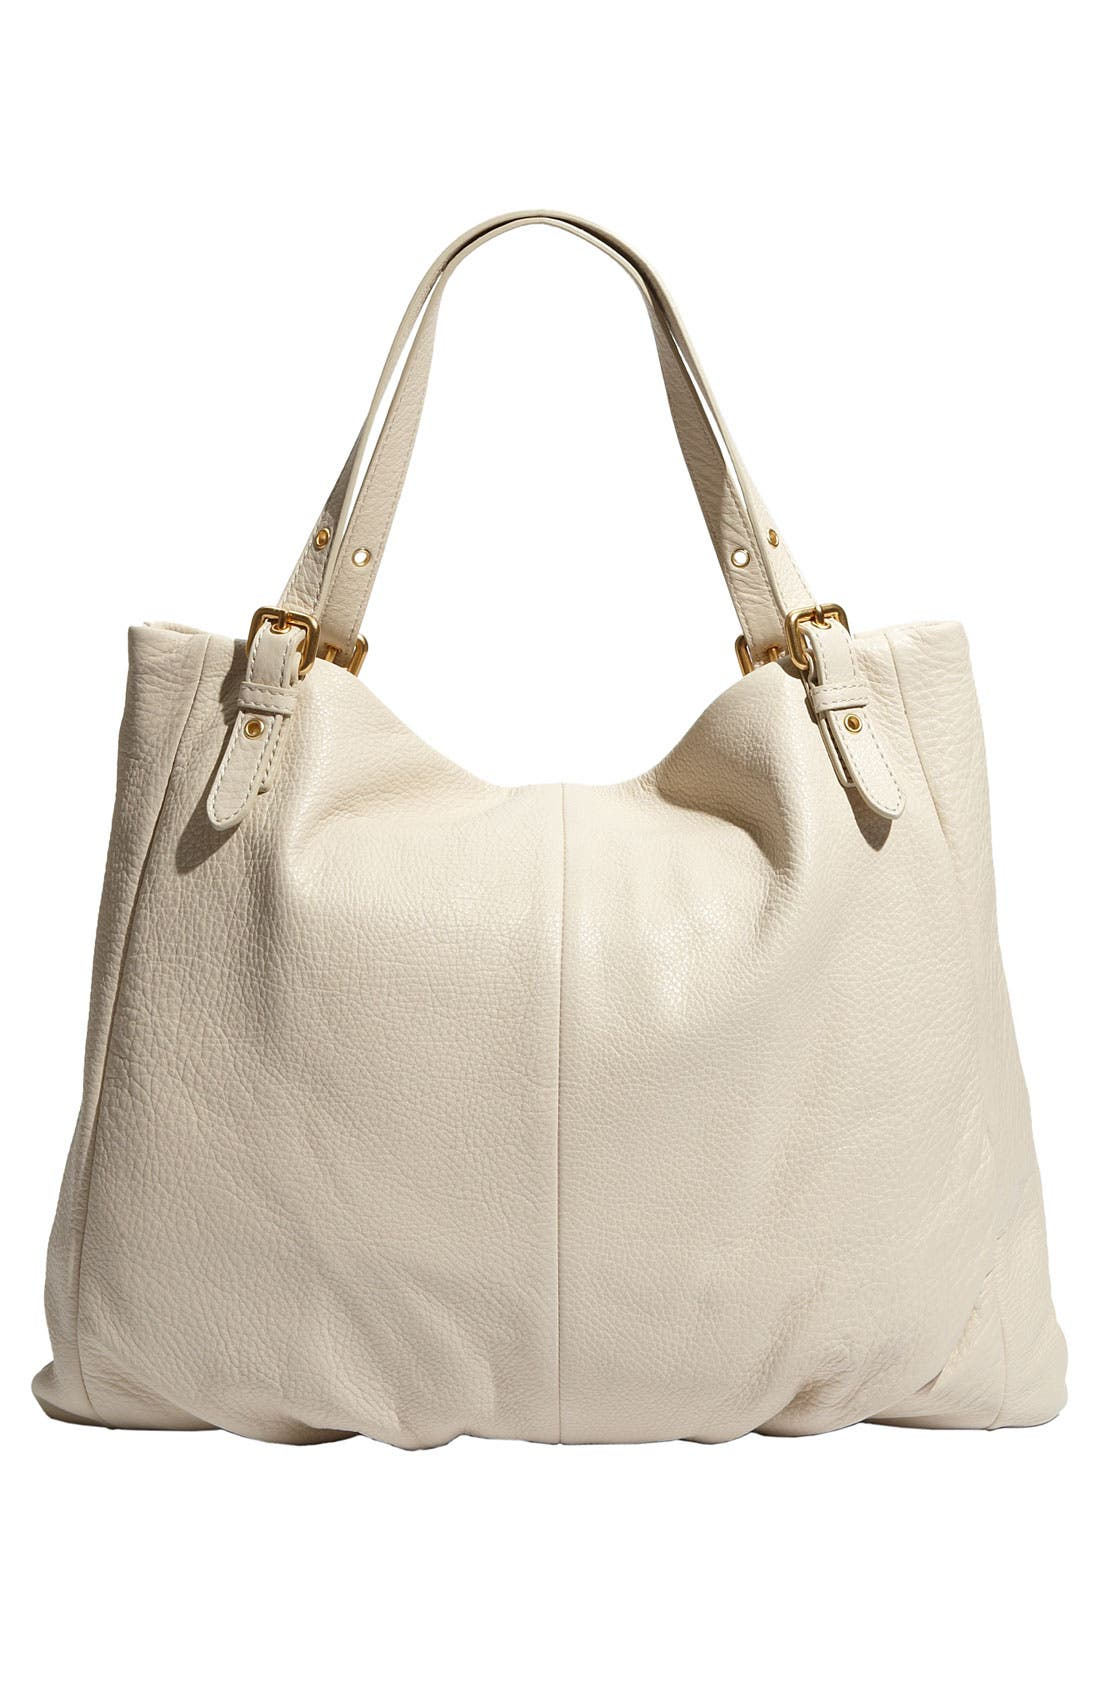 MARC BY MARC JACOBS 'Classic Q - Shopgirl' Leather Tote,                             Alternate thumbnail 7, color,